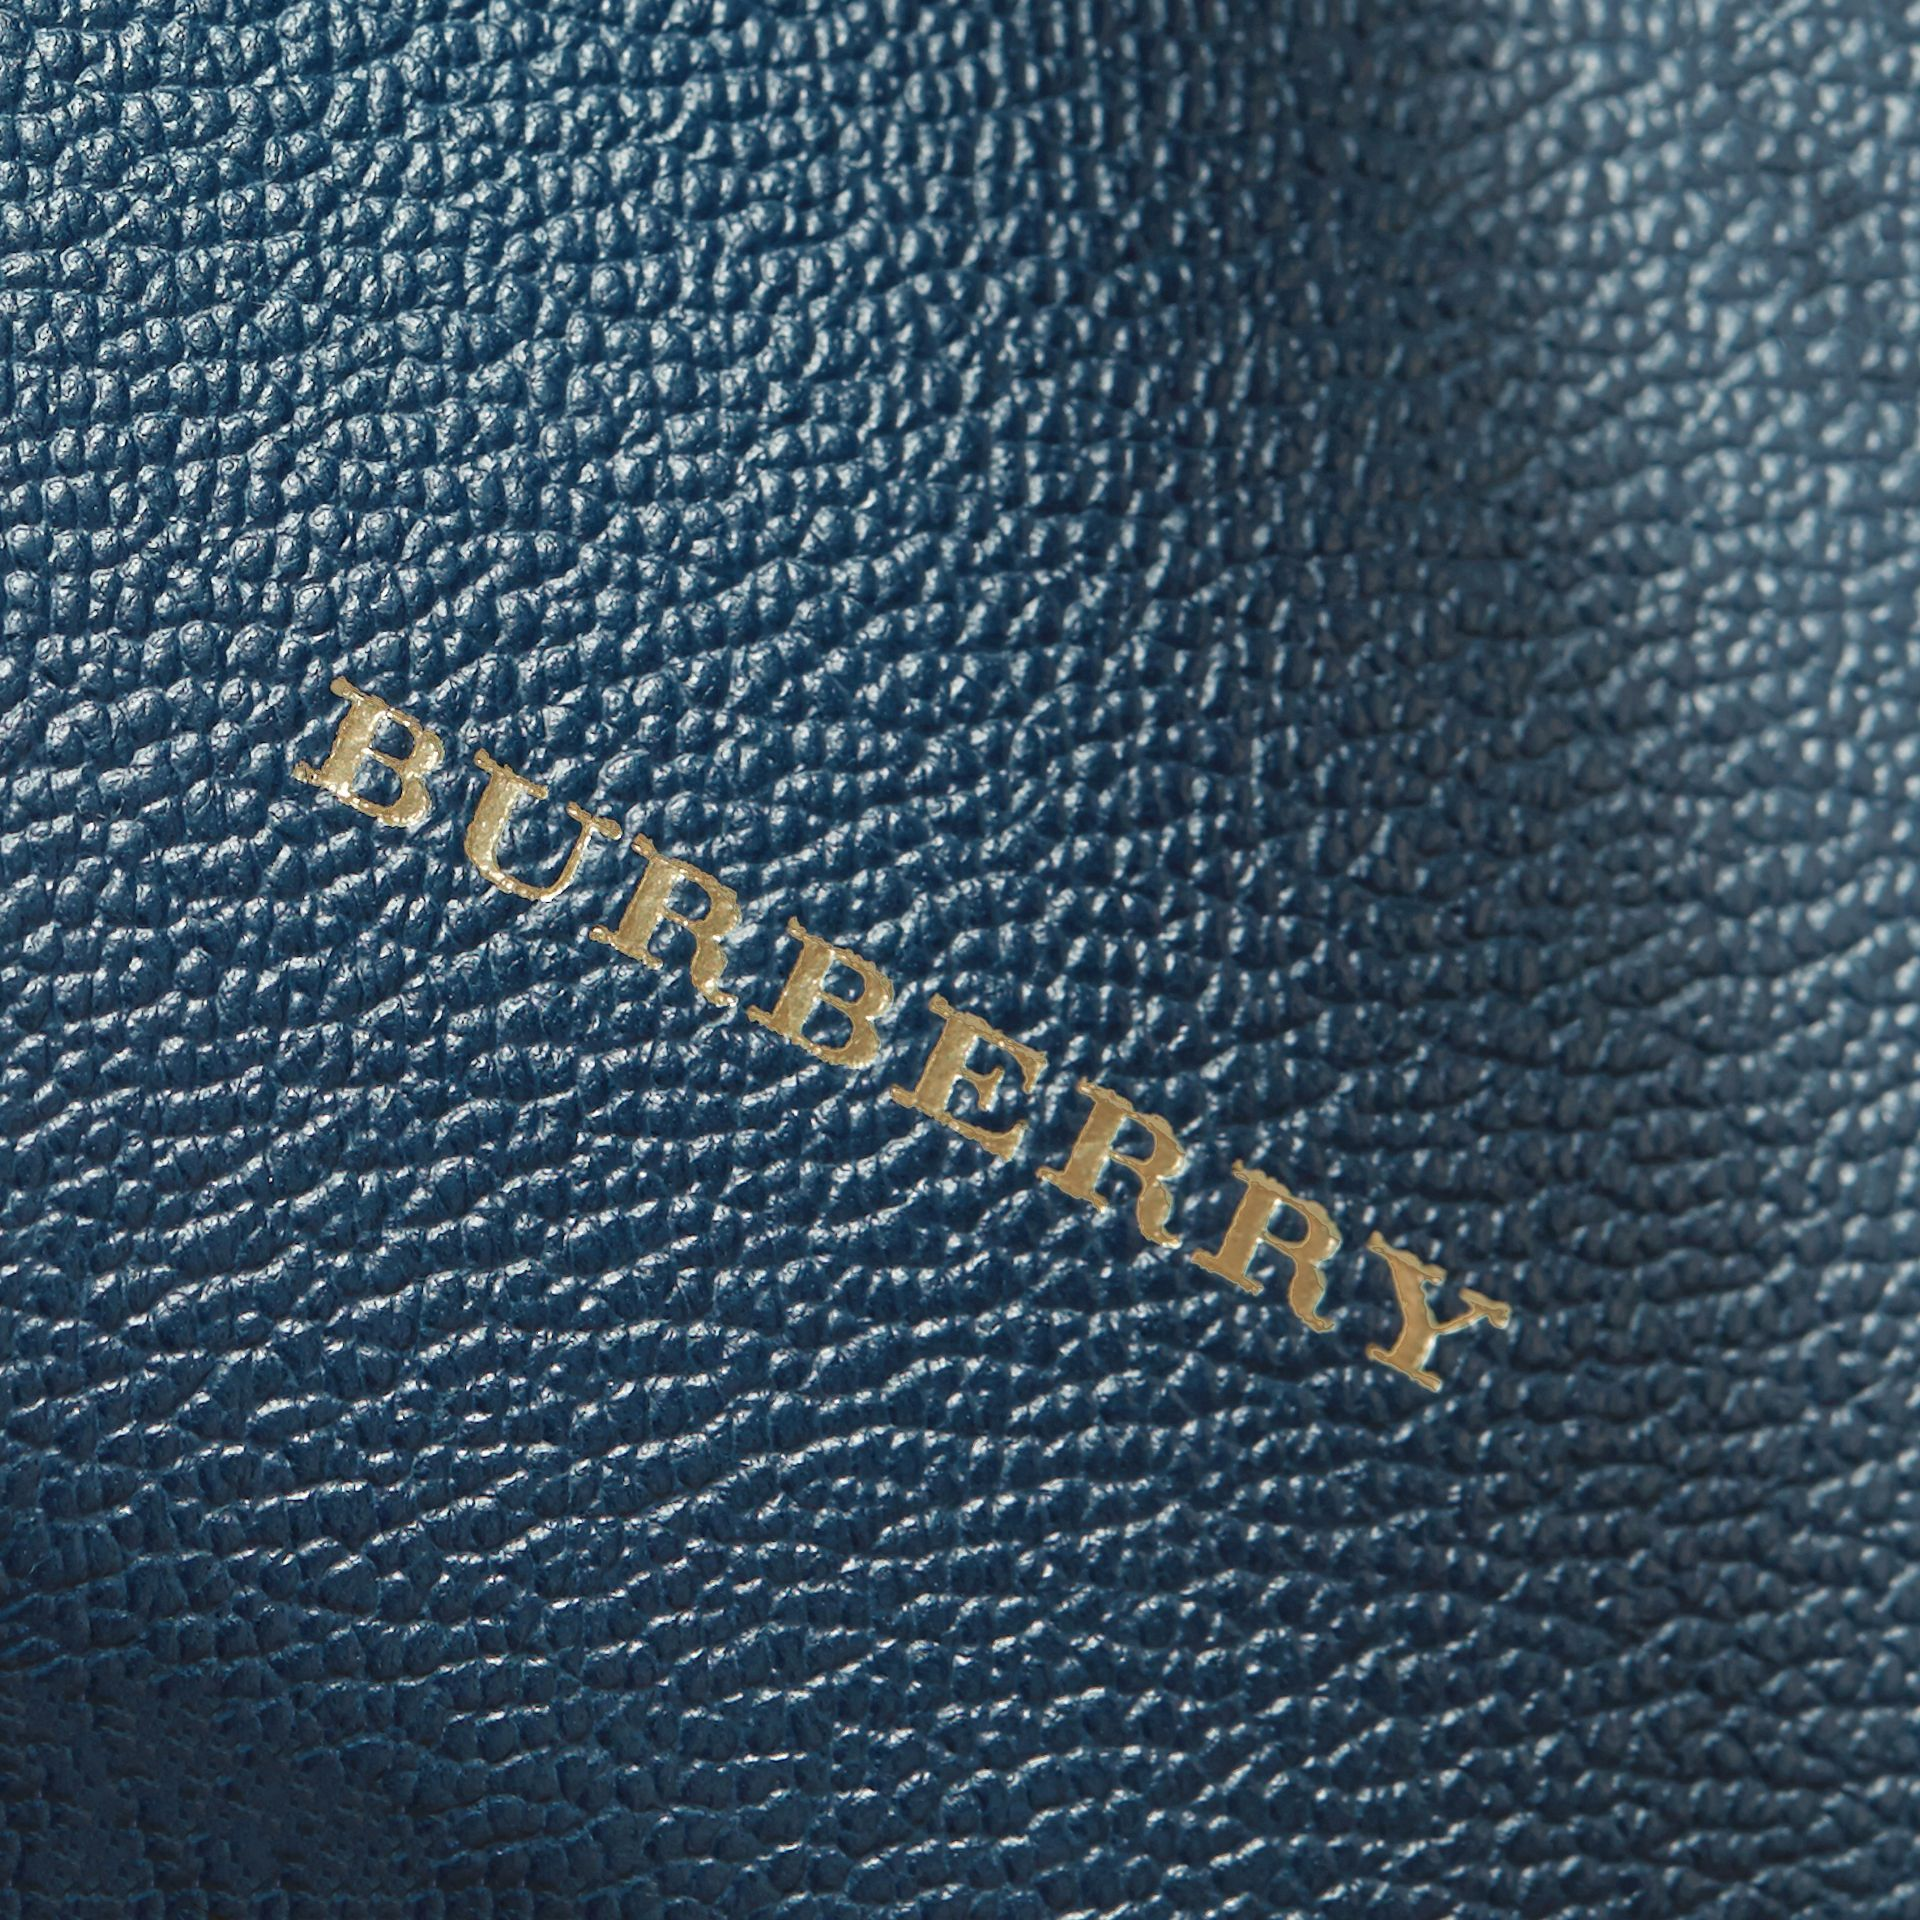 Buckle Detail Leather and House Check Crossbody Bag in Blue Carbon - Women | Burberry - gallery image 6